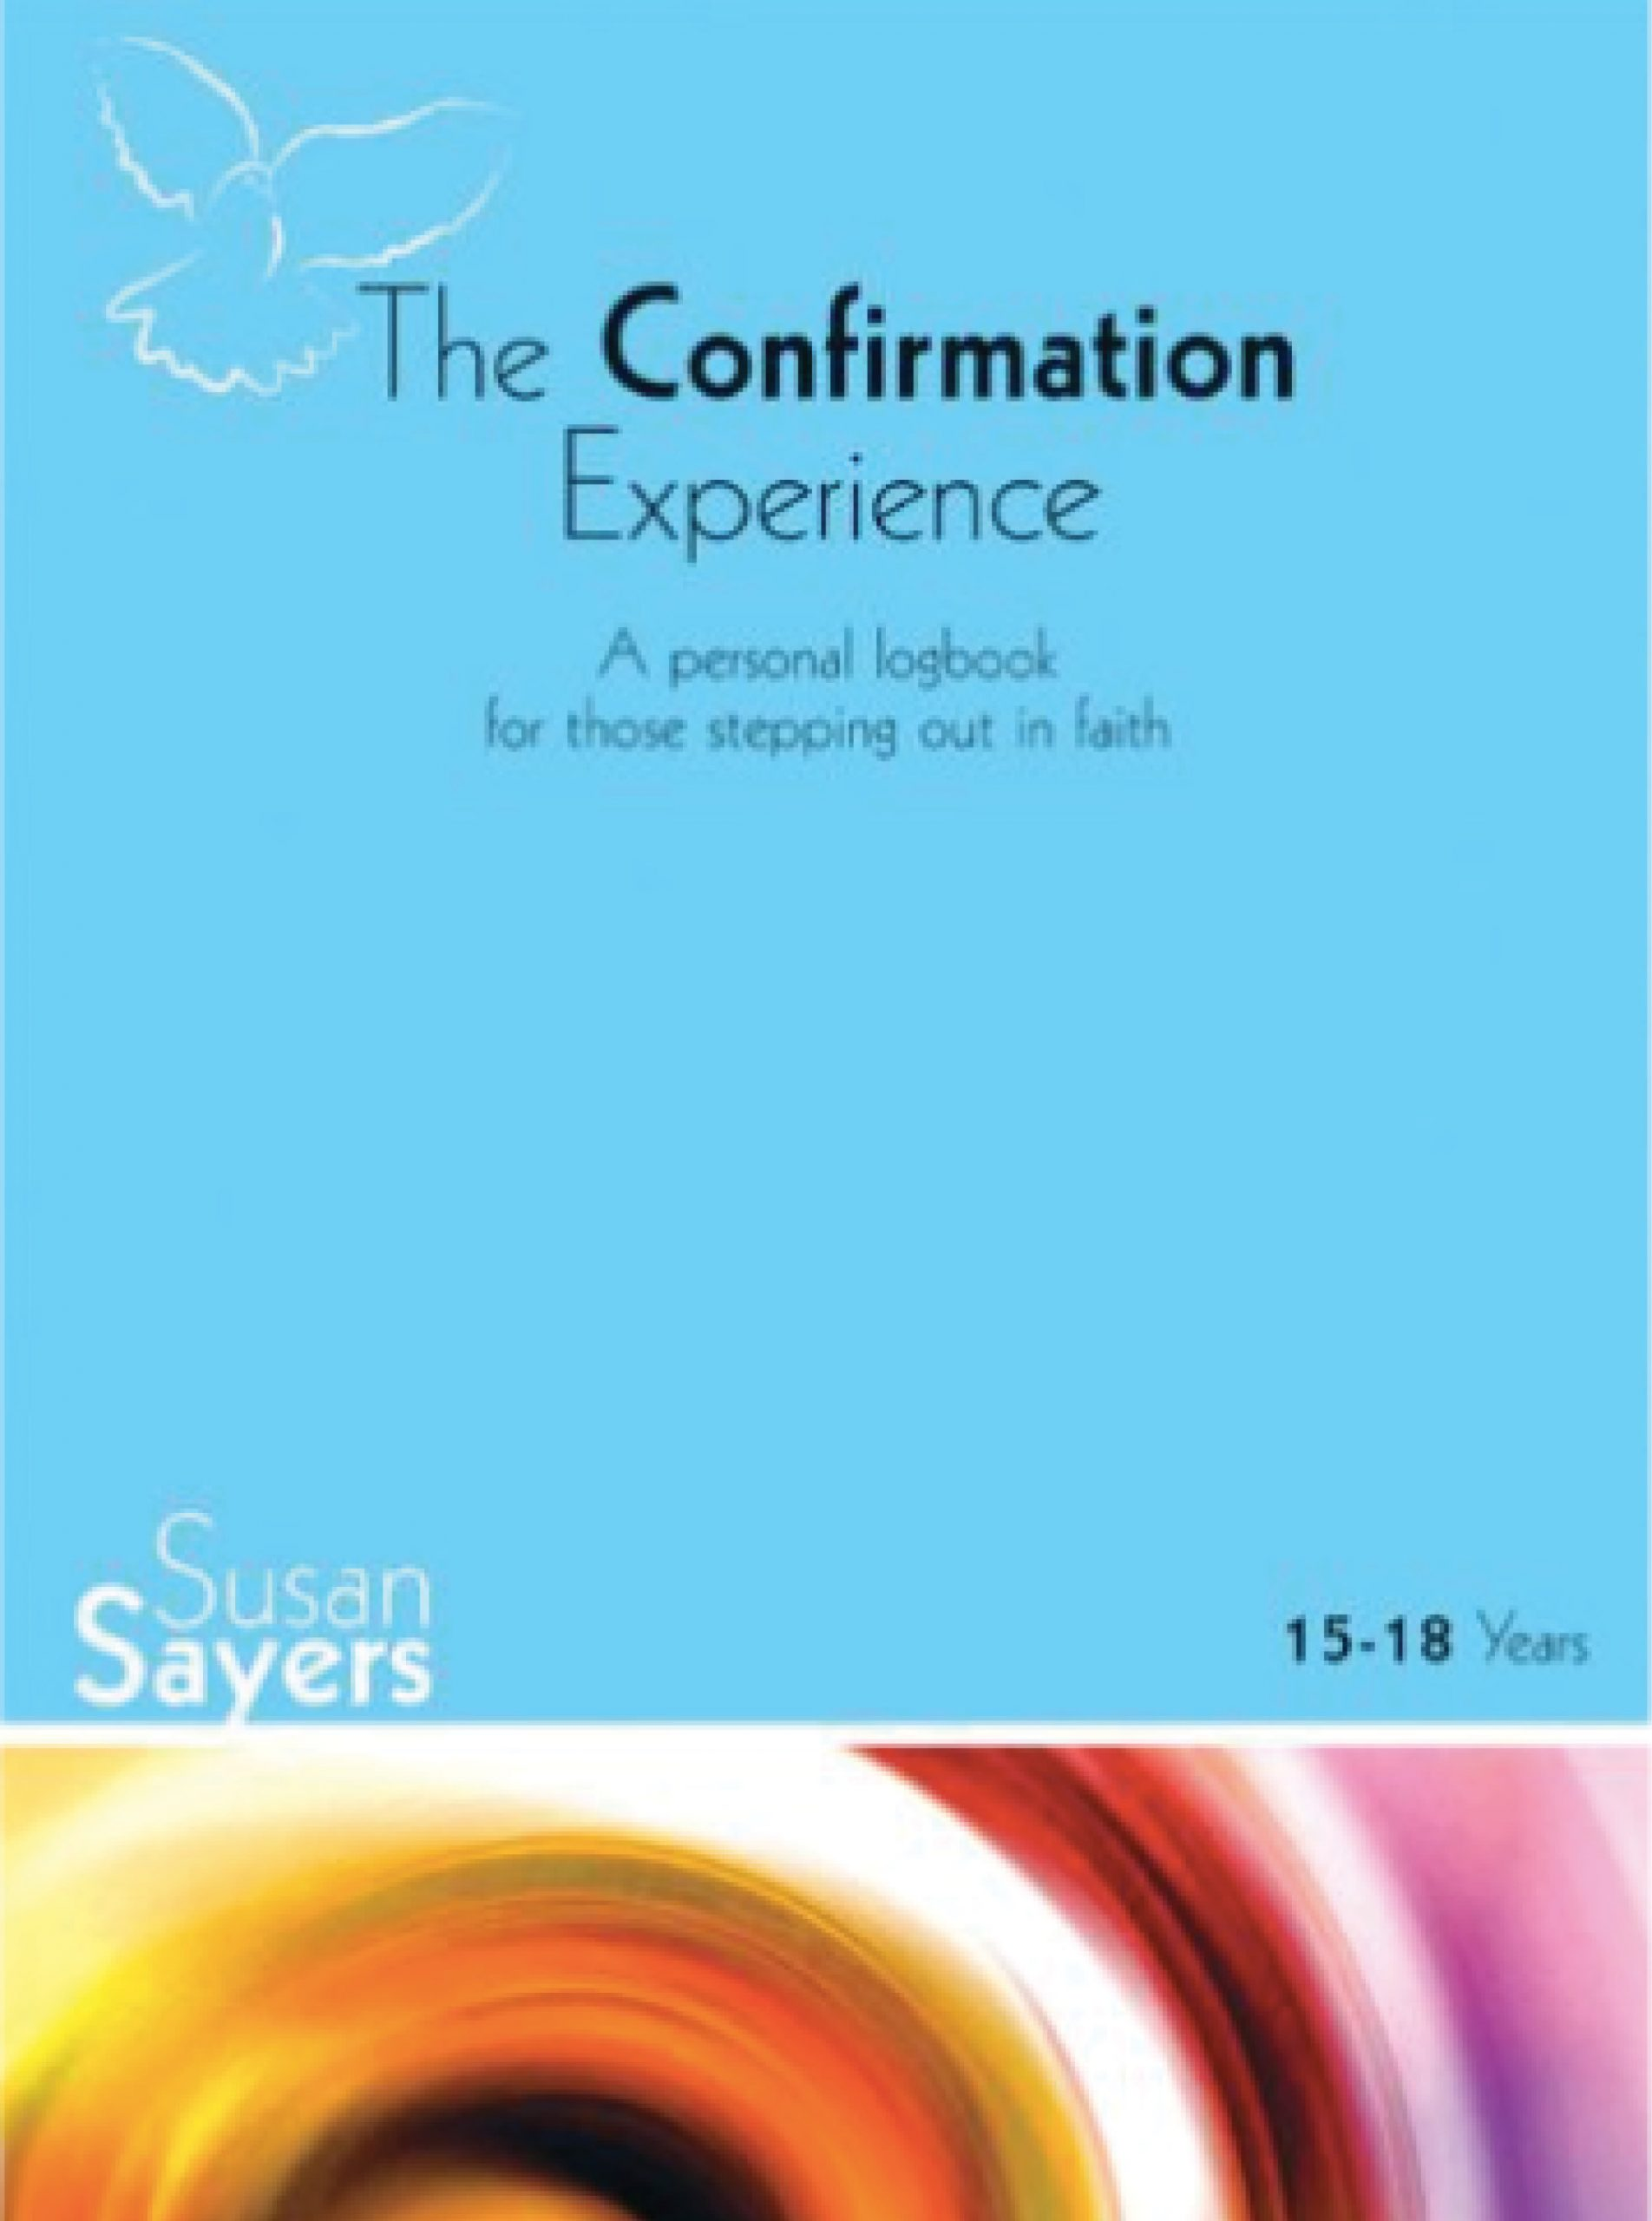 The Confirmation Experience